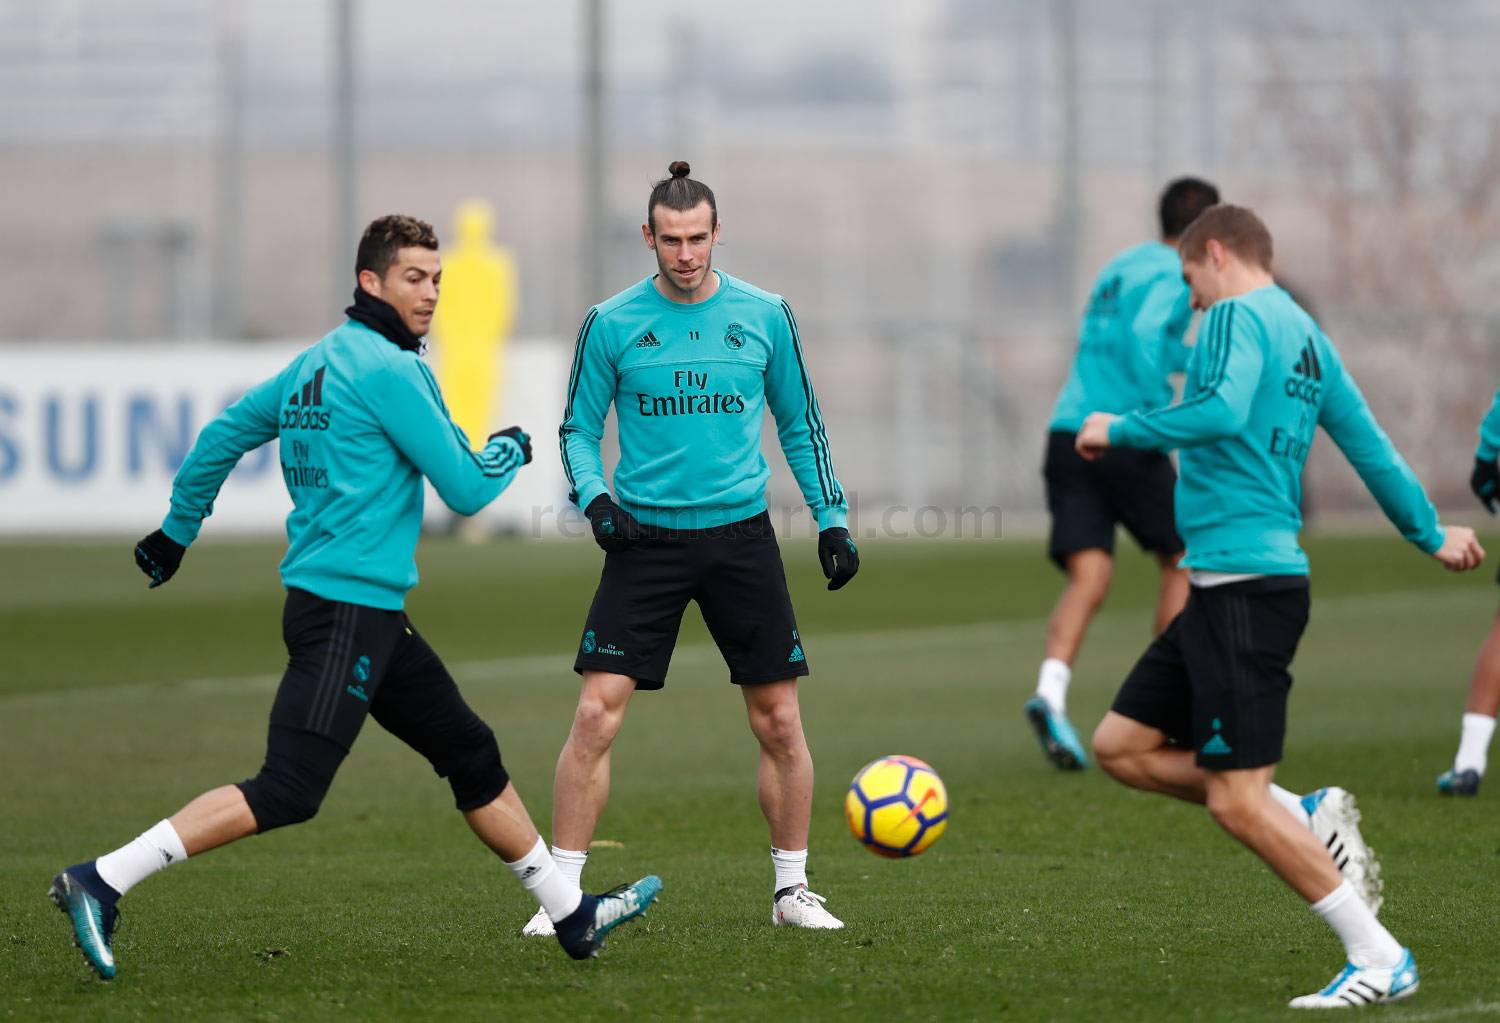 Real Madrid - Entrenamiento del Real Madrid - 25-01-2018